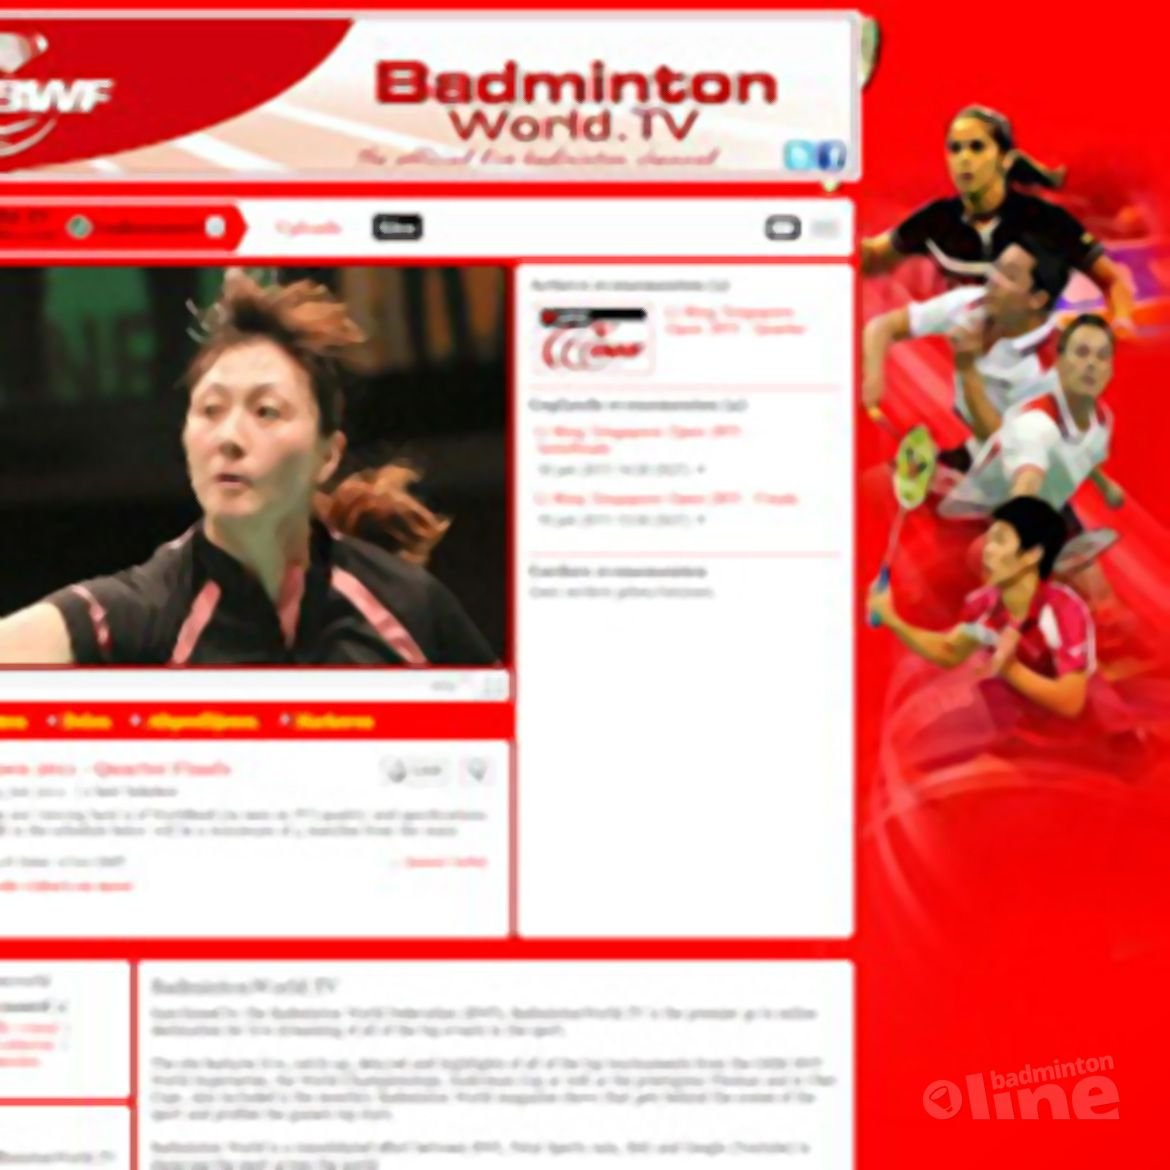 BWF launch official live streaming badminton channel on YouTube